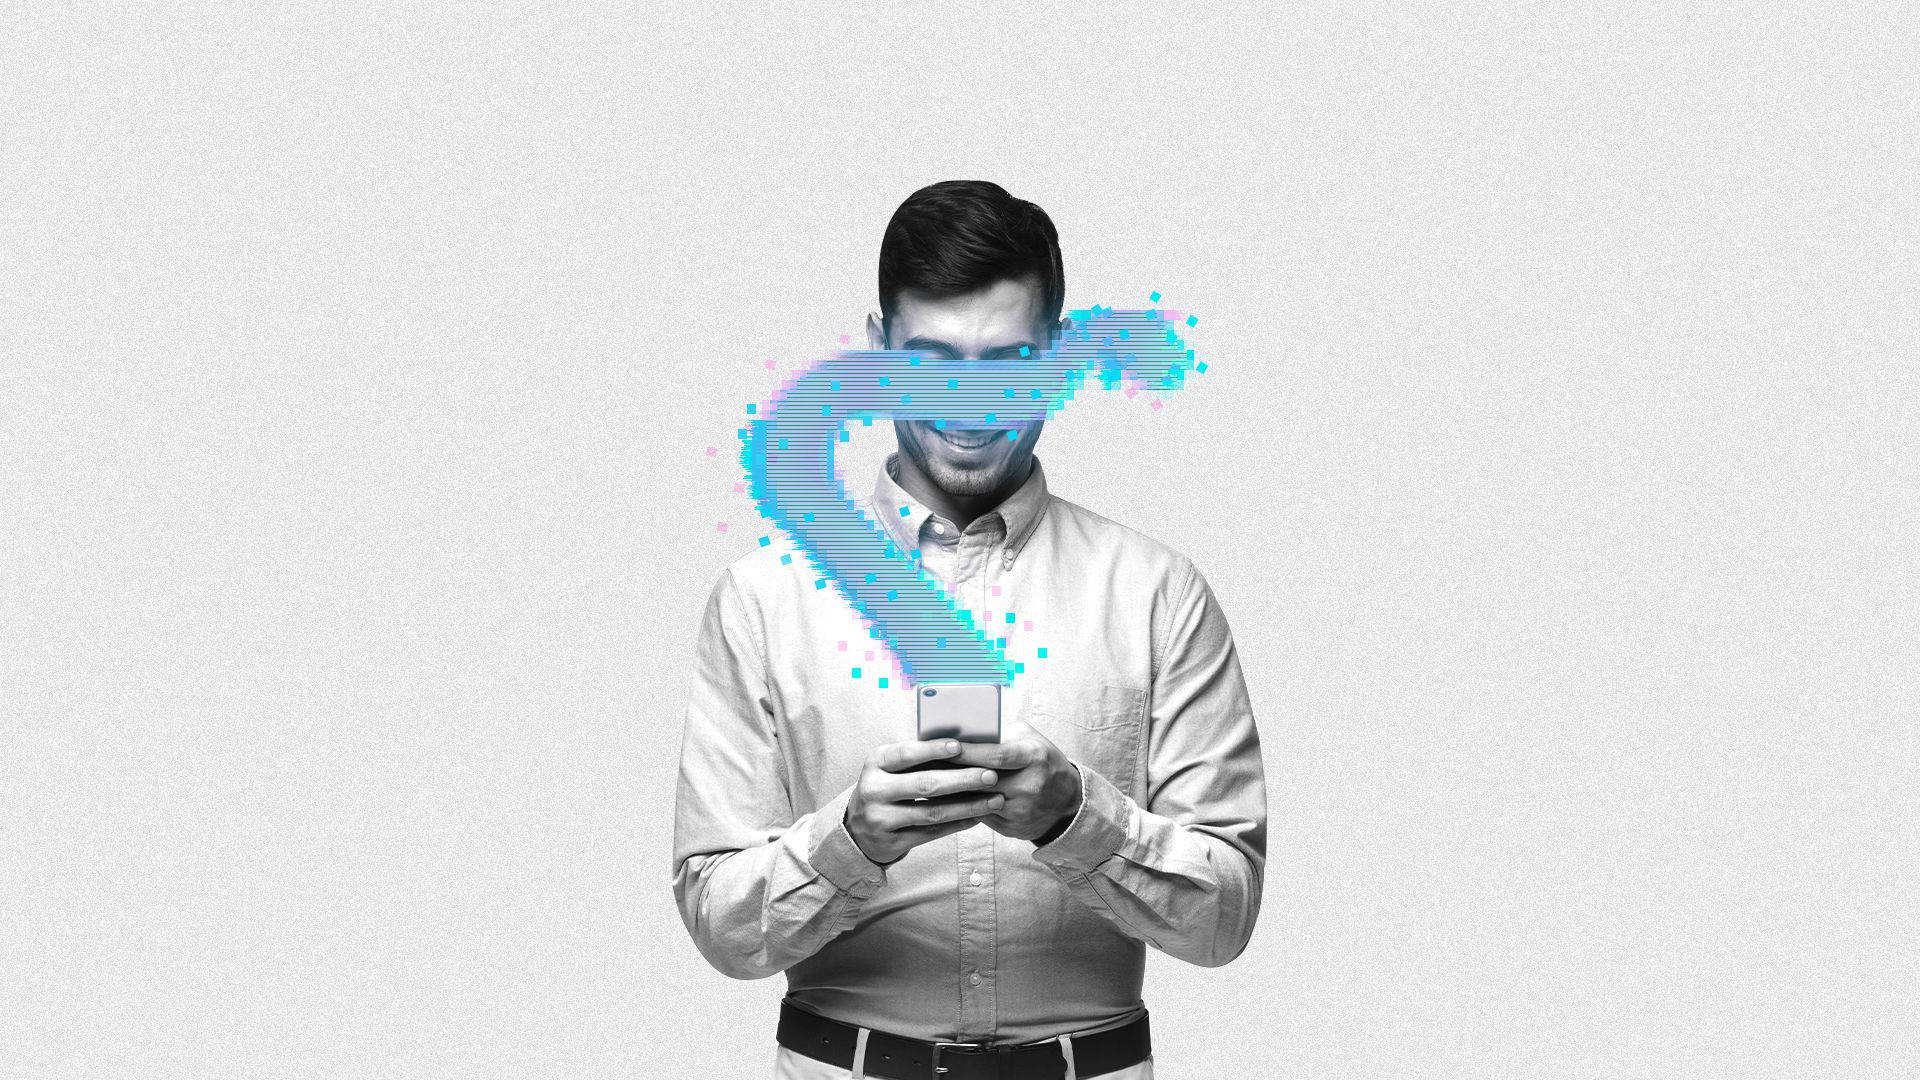 In this image, a man holds a smartphone and a digital line emitted from the phone covers his eyes.